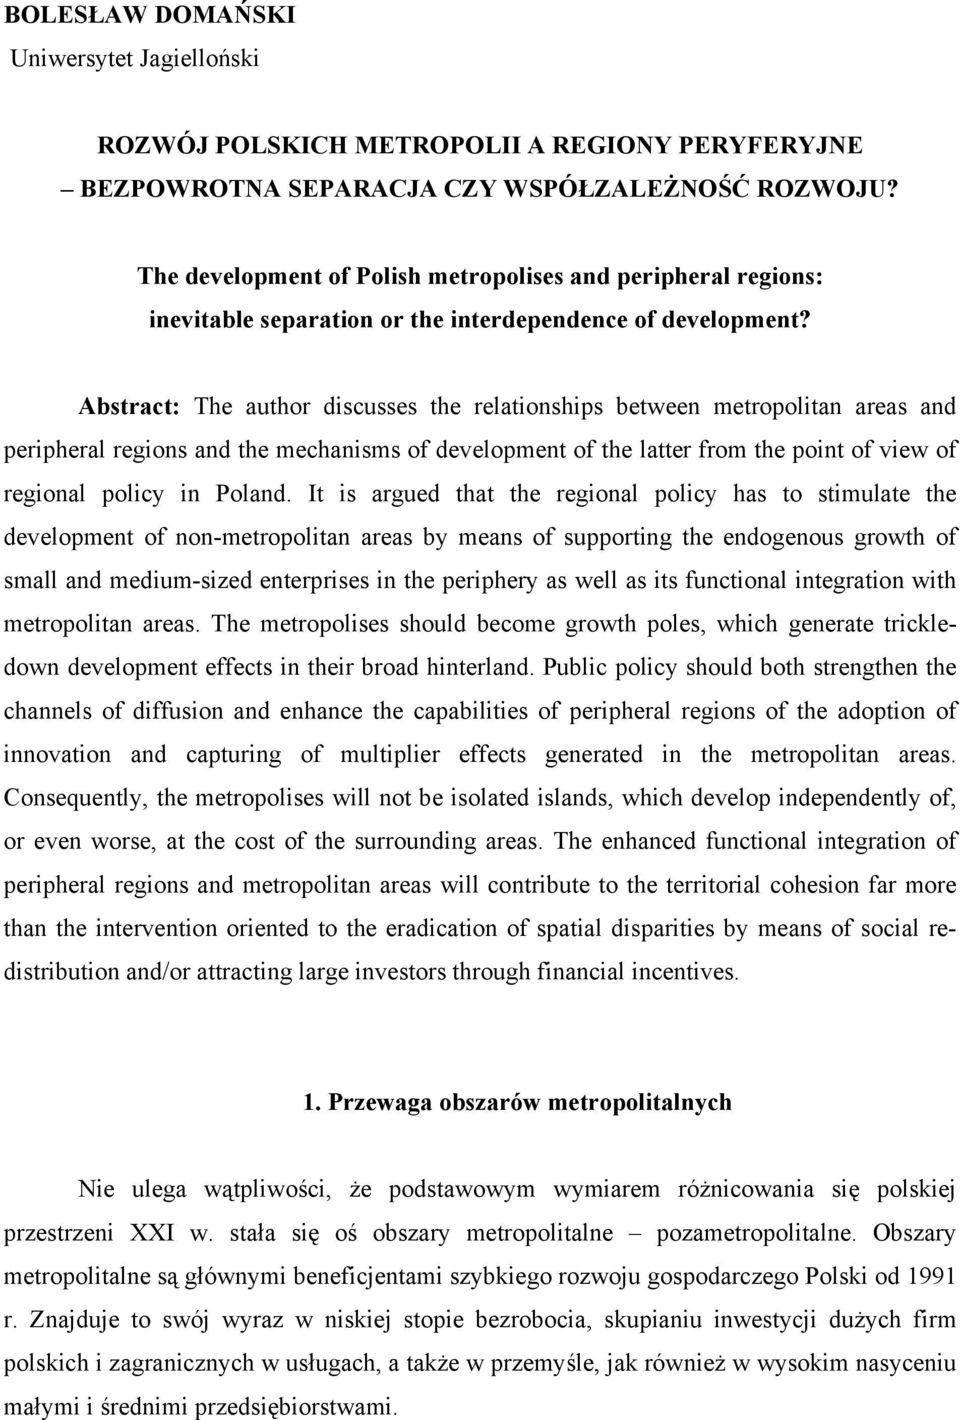 Abstract: The author discusses the relationships between metropolitan areas and peripheral regions and the mechanisms of development of the latter from the point of view of regional policy in Poland.